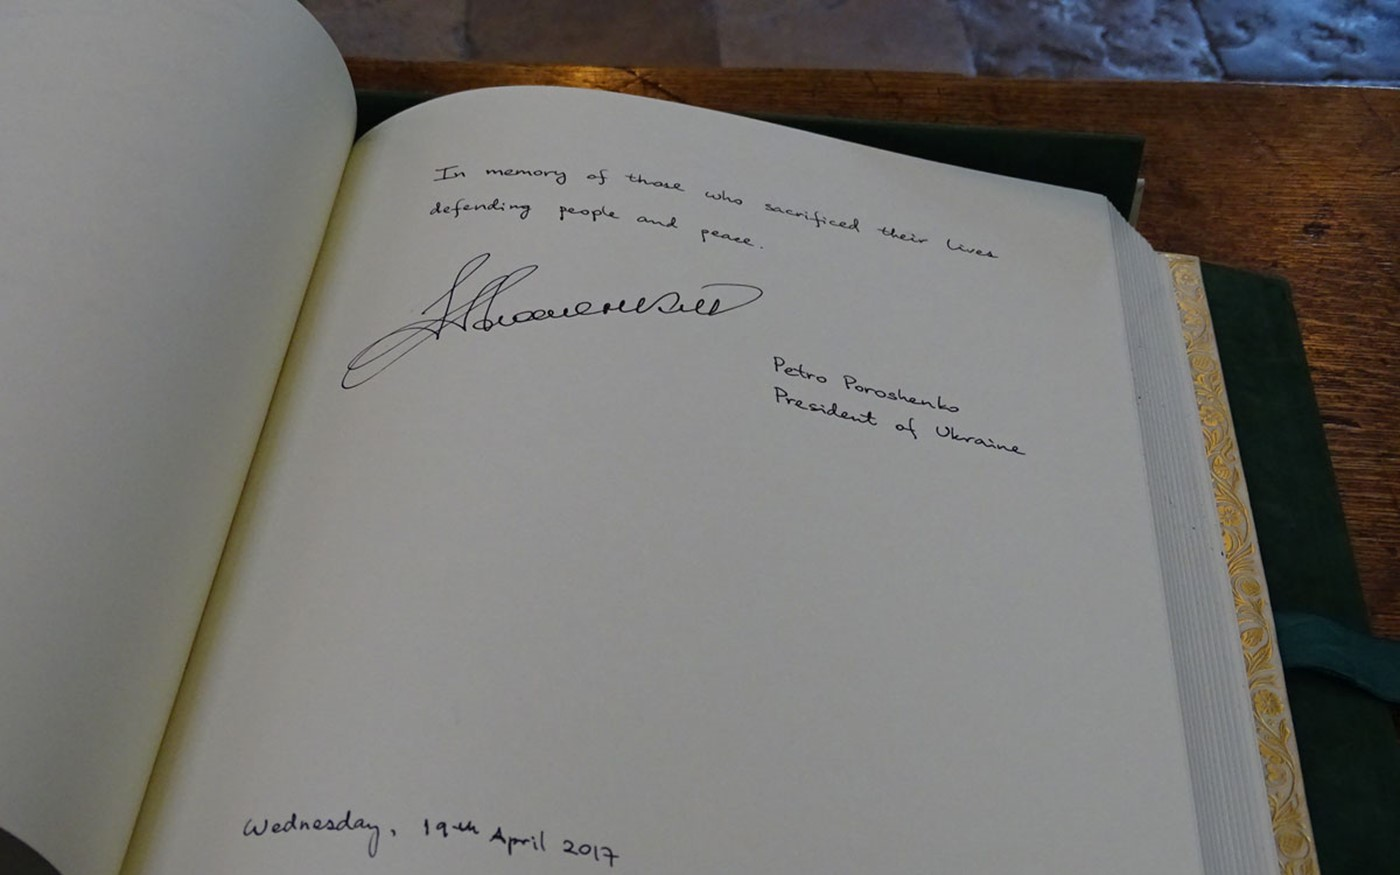 The signature of The President of Ukraine, His Excellency Petro Poroshenko, in Westminster Abbey's Distinguished Visitors' Book